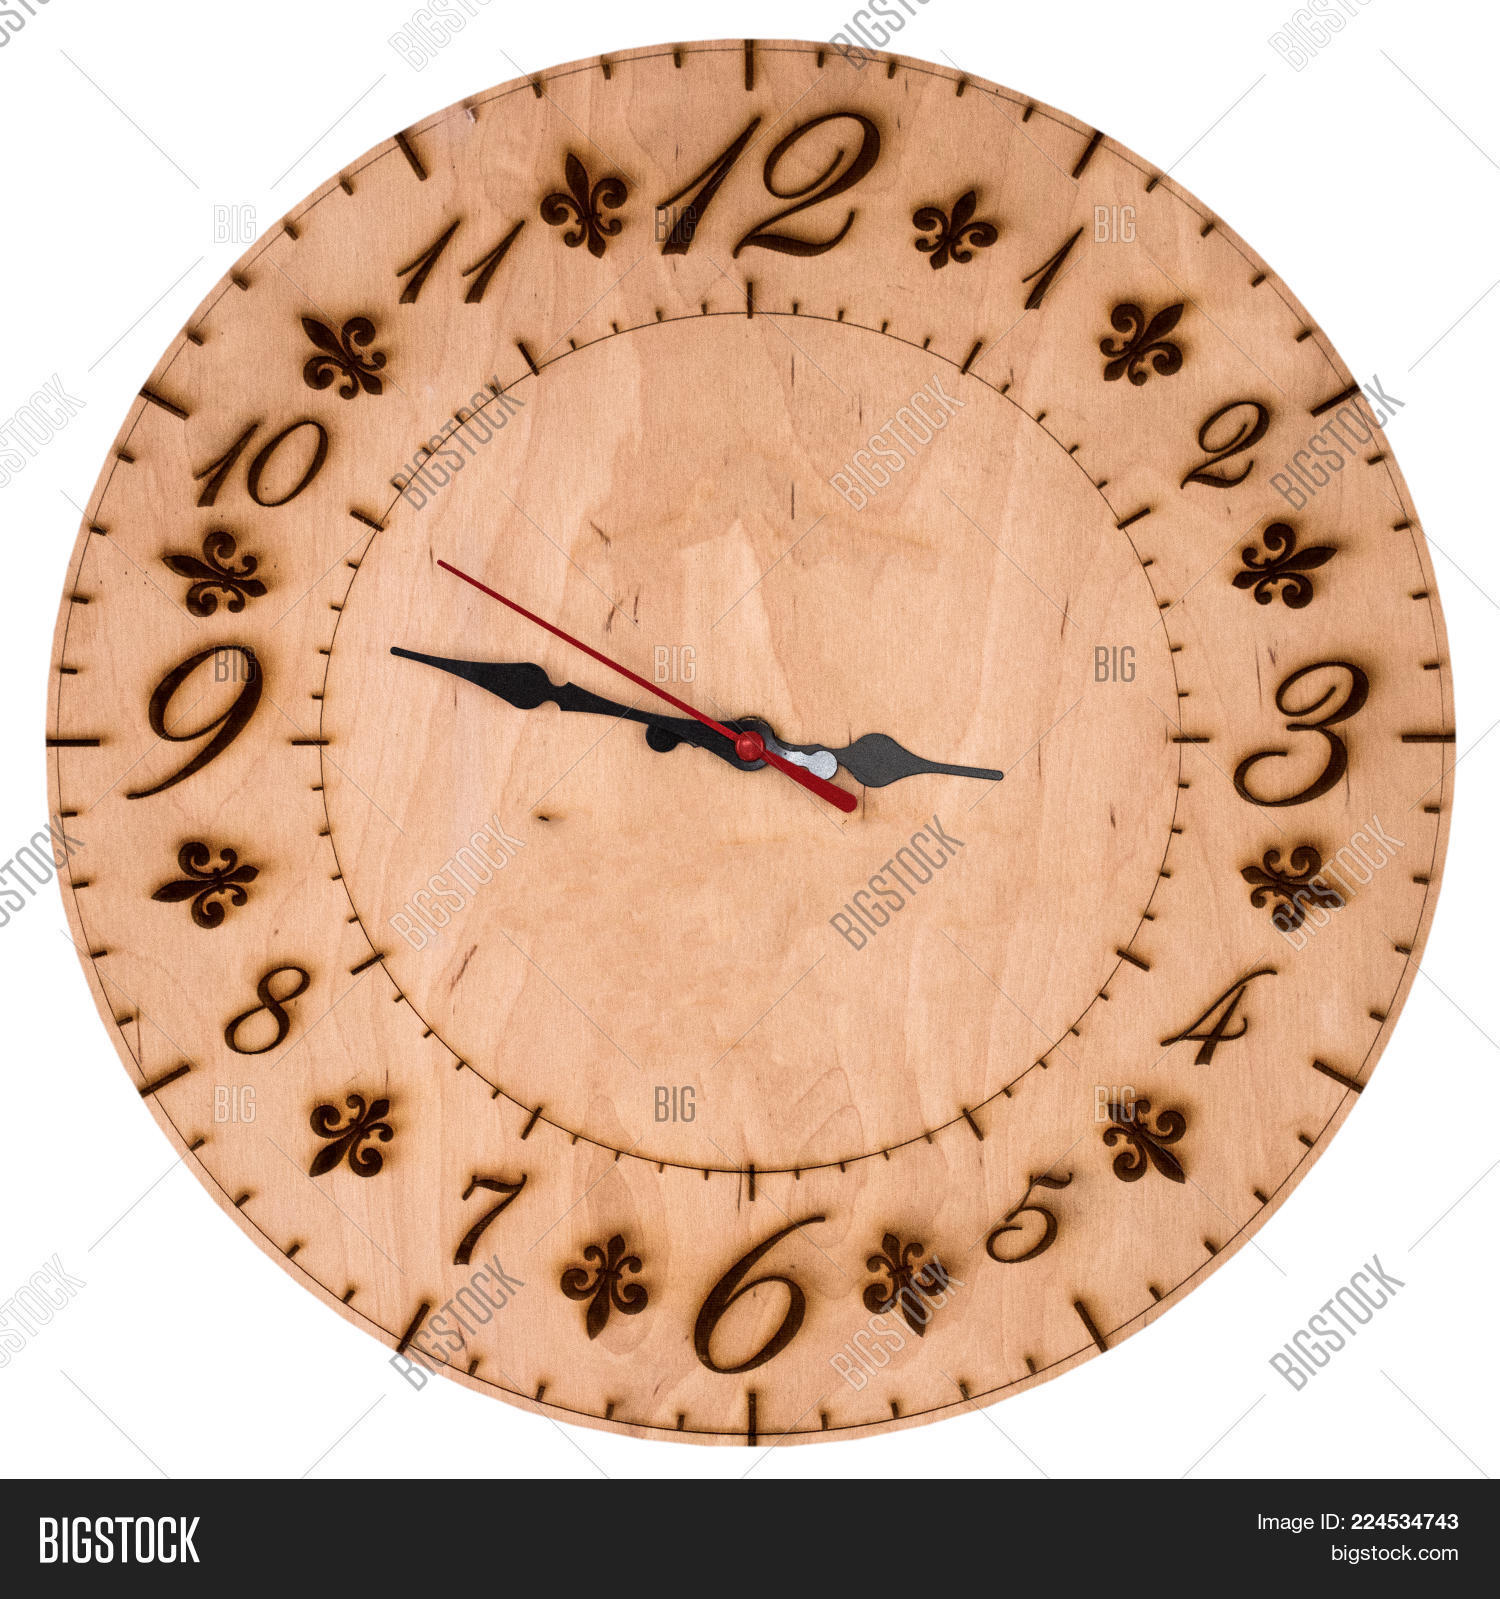 Appointment wooden wall clock PowerPoint Template - Appointment ...